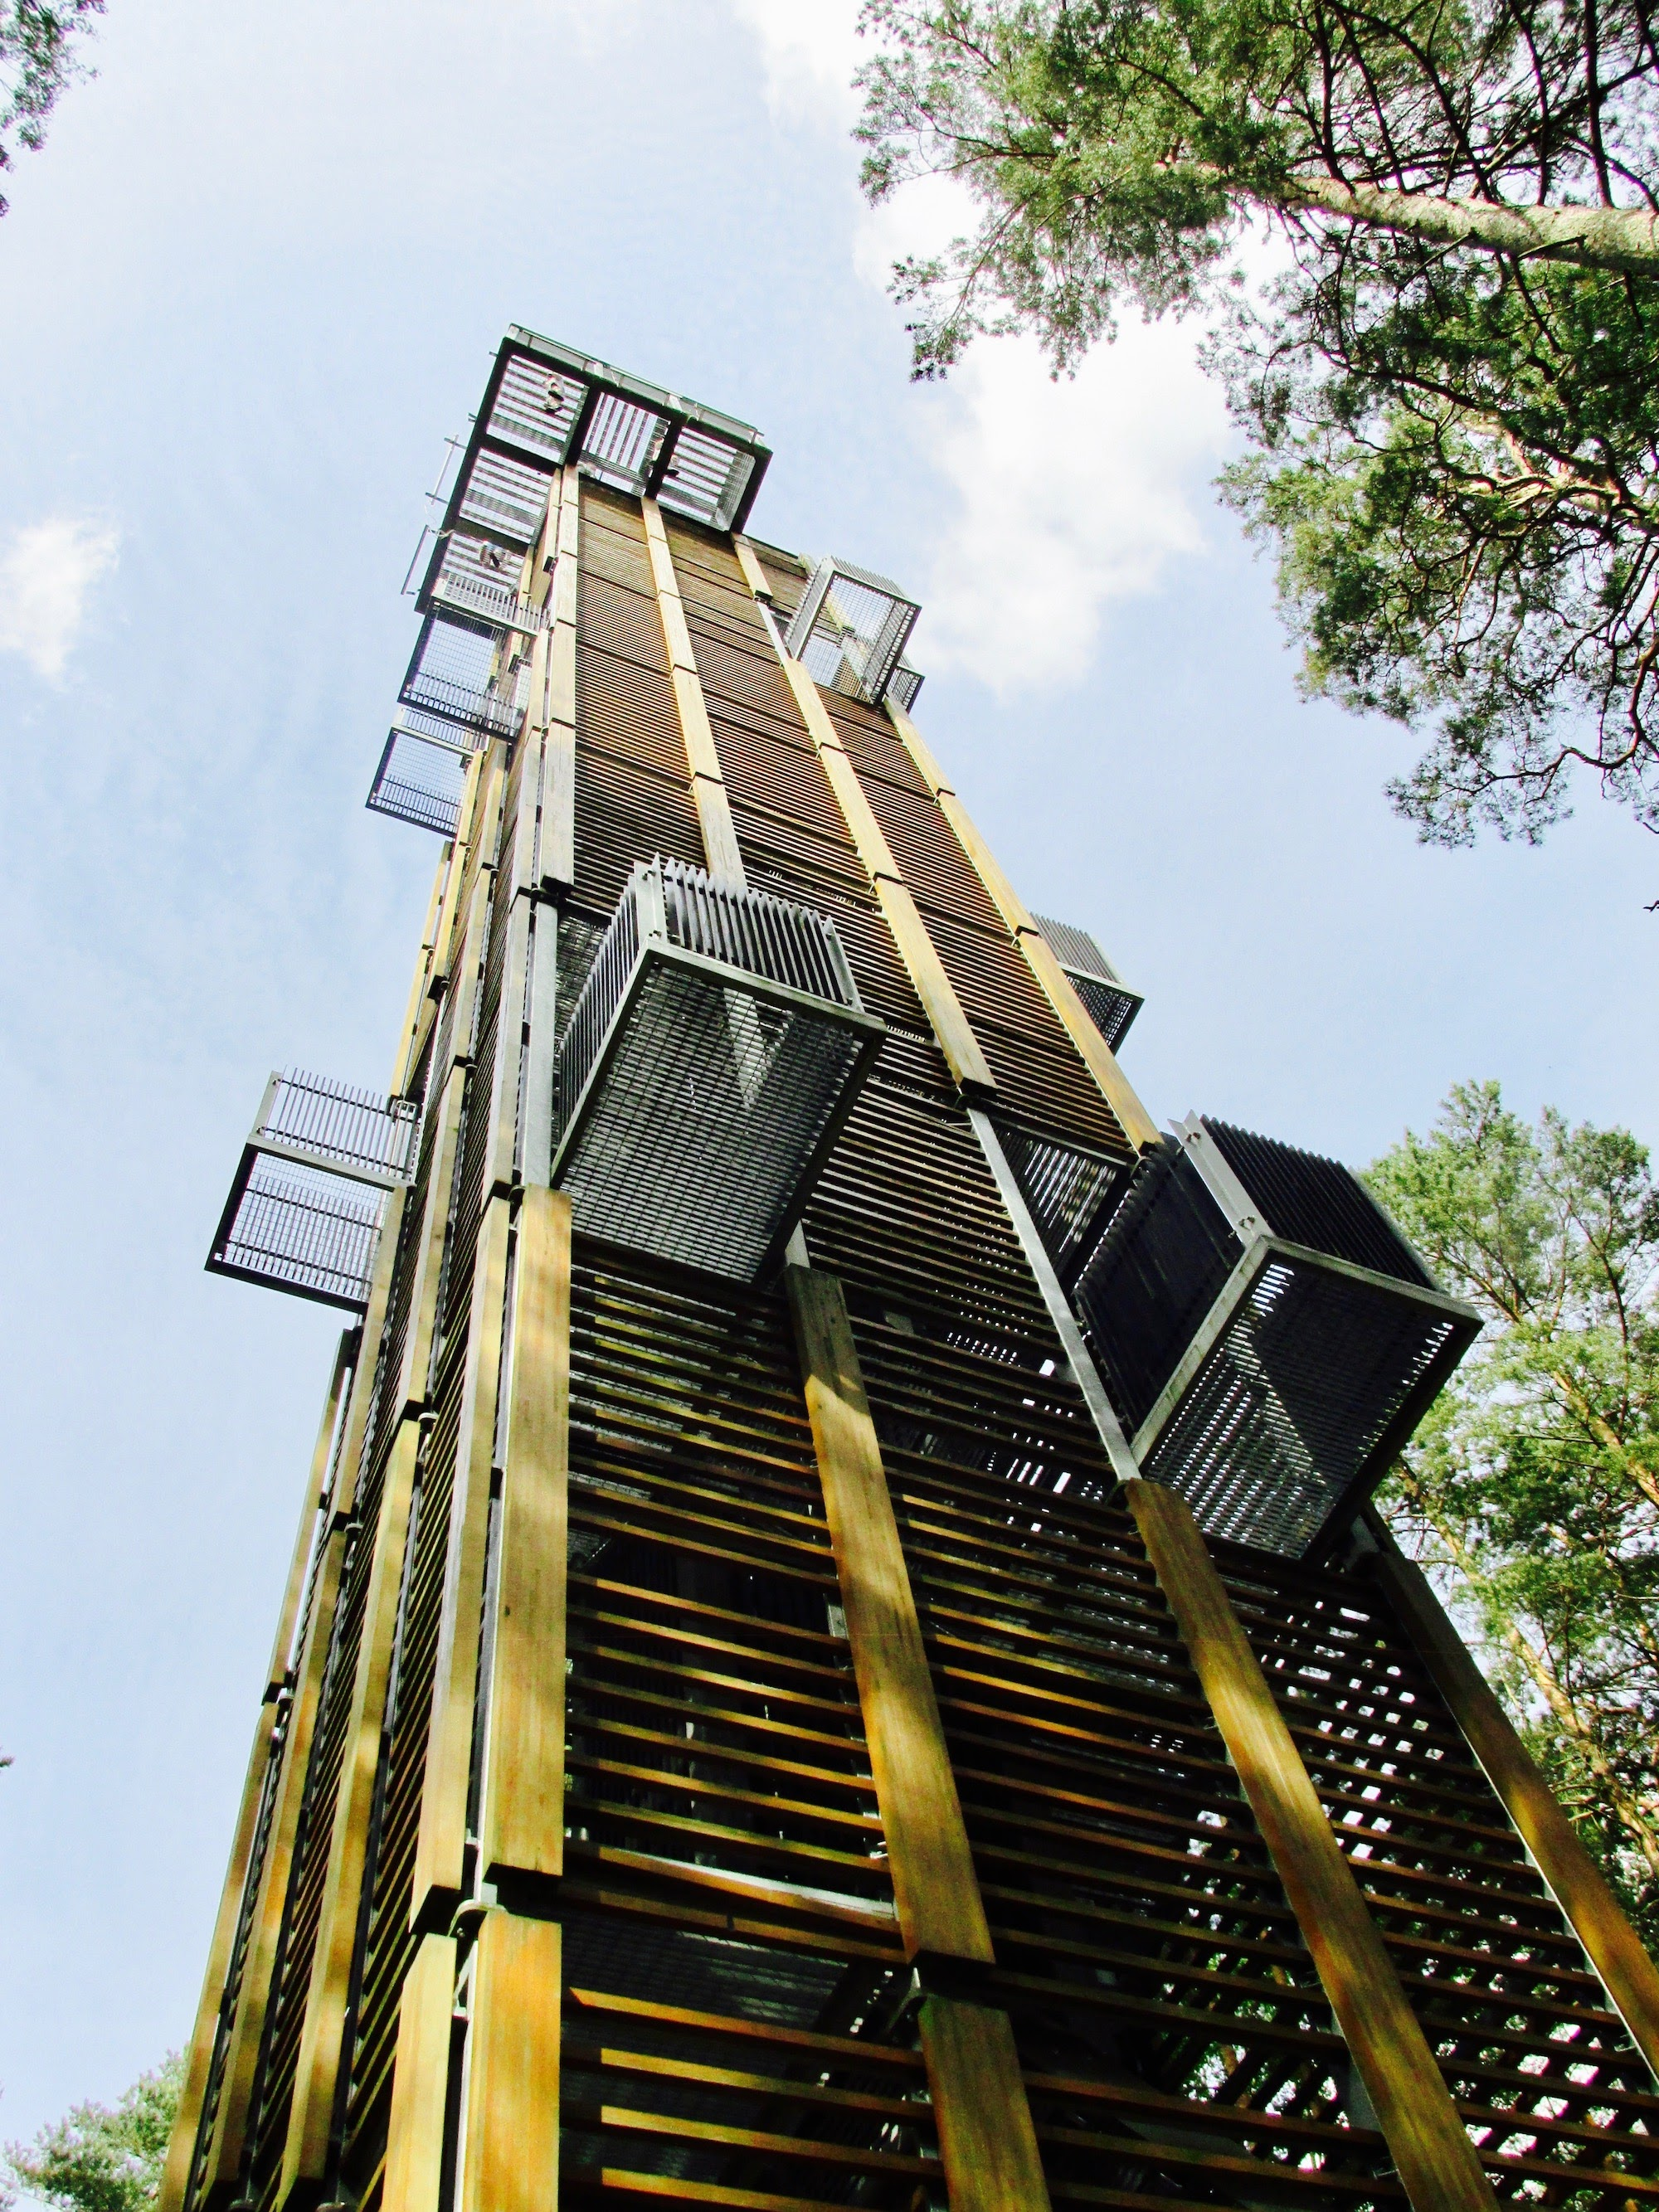 A viewing tower with the height of 33.5 m